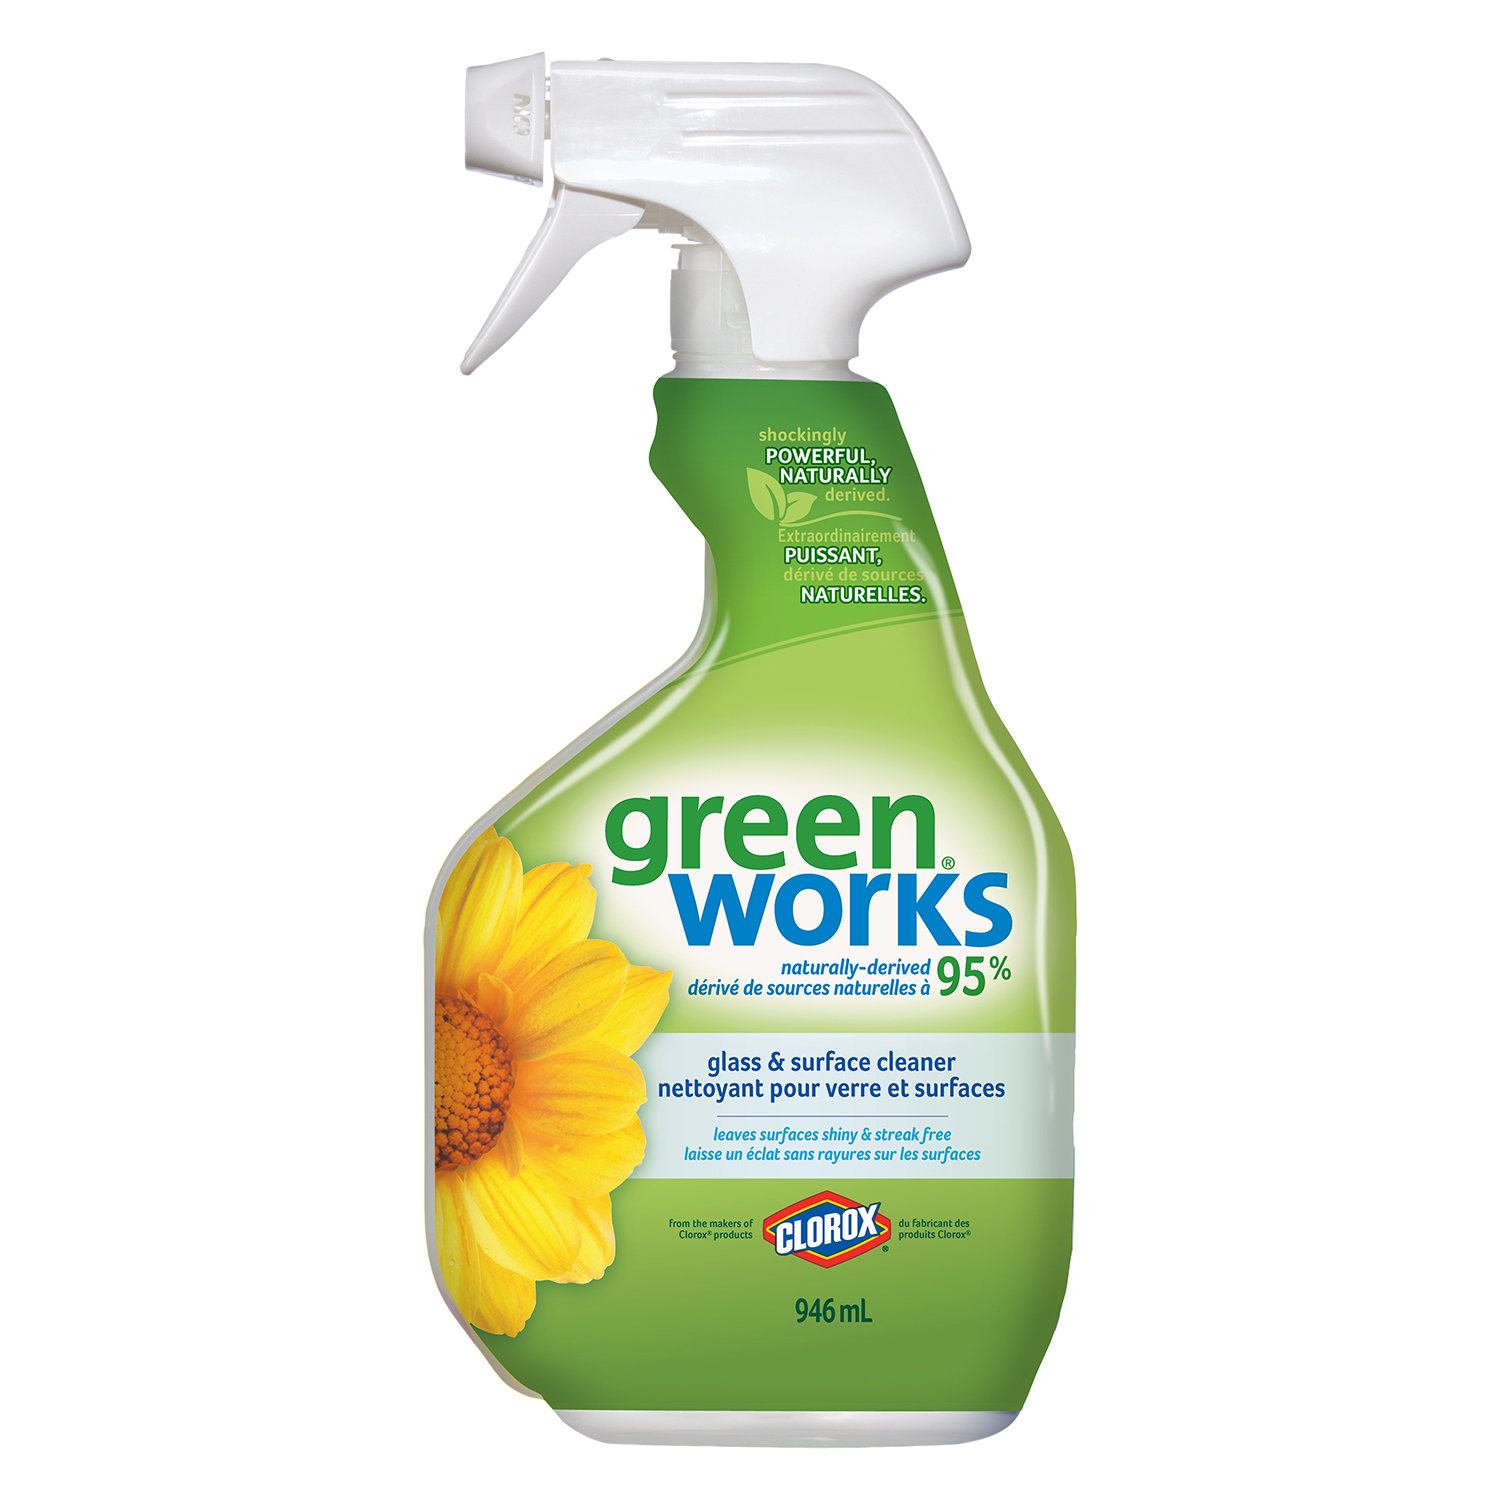 a study of the value of the green works product by clorox The eco pulse study found that the only product category for which there is a broad,  the products are priced below well-established brands such as clorox co's green works, the method cleaning product line, or ecover (which  great value naturals liquid laundry detergent: $897 for a 100-fluid-ounce (3-liter) bottle (64.